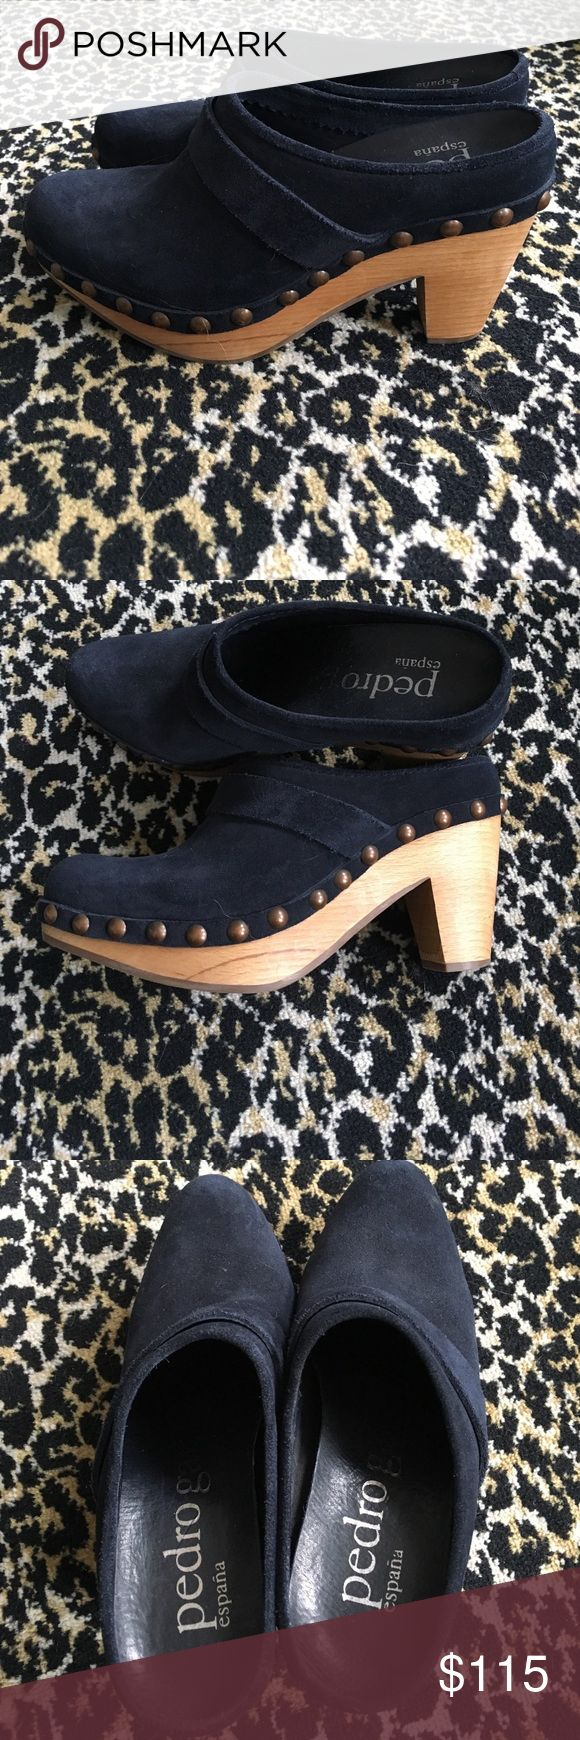 "Pedro Garcia navy suede clogs Too small for me. Beautiful Pedro Garcia clogs. Gold hardware. 4.5"" heel. In near perfect condition. Made in Spain! pedro garcia Shoes Mules & Clogs"